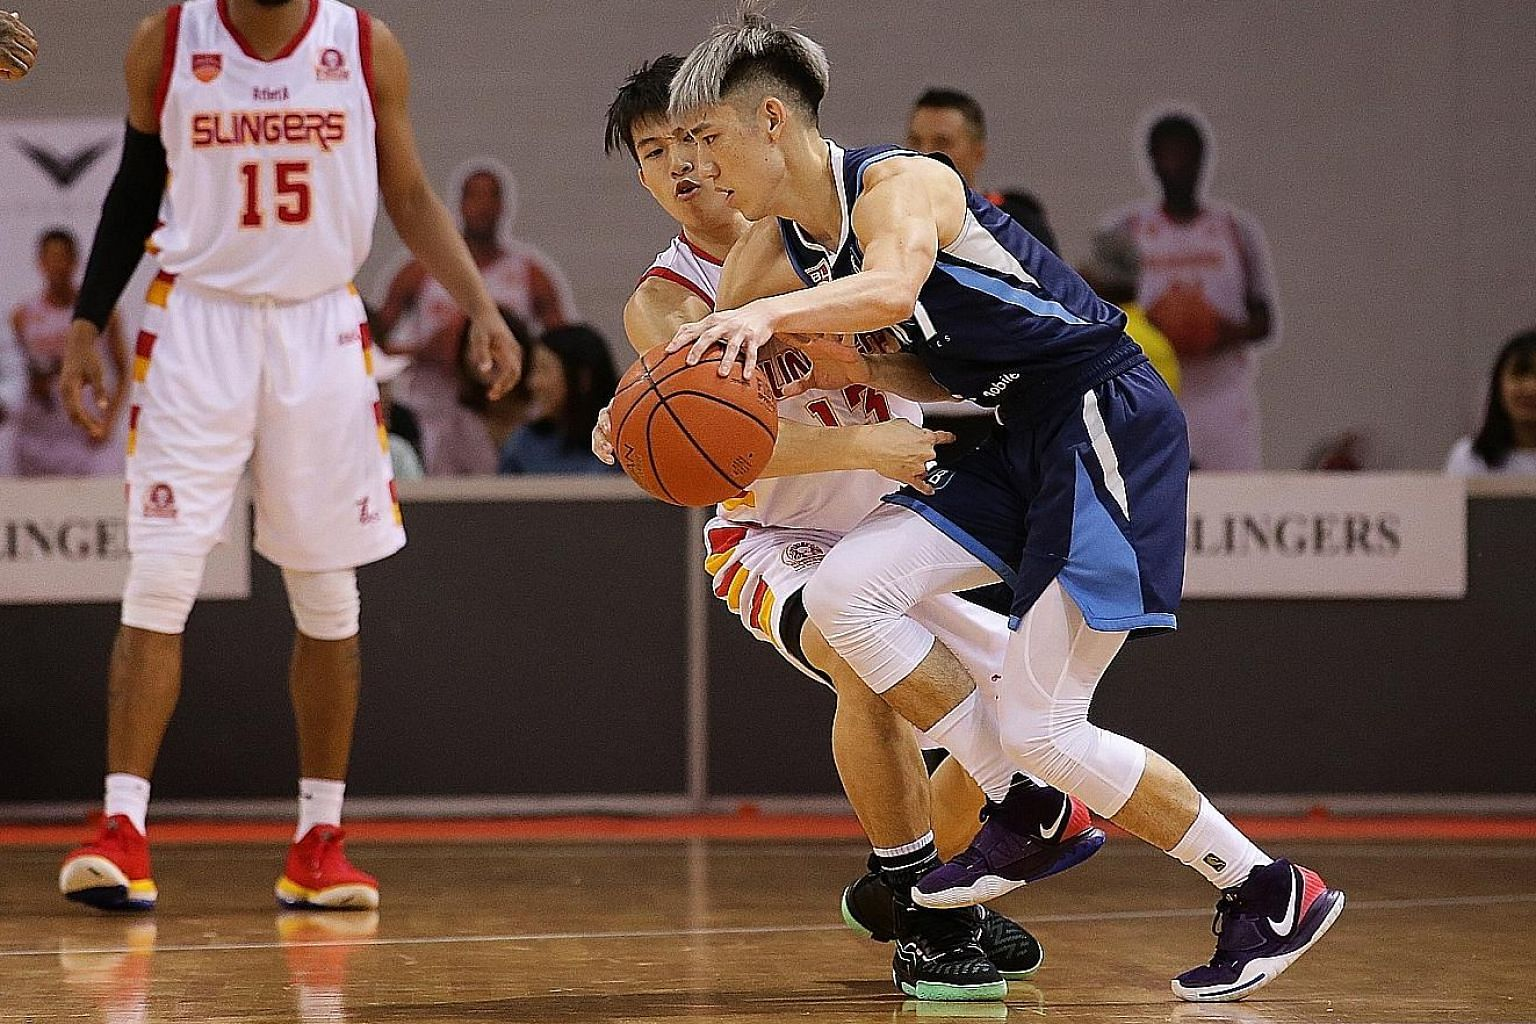 Taipei Fubon Braves guard Joseph Lin taking on the Singapore Slingers in an ABL match at the OCBC Arena in February. He scored 11 points and pulled down five rebounds in his team's 106-99 overtime loss.